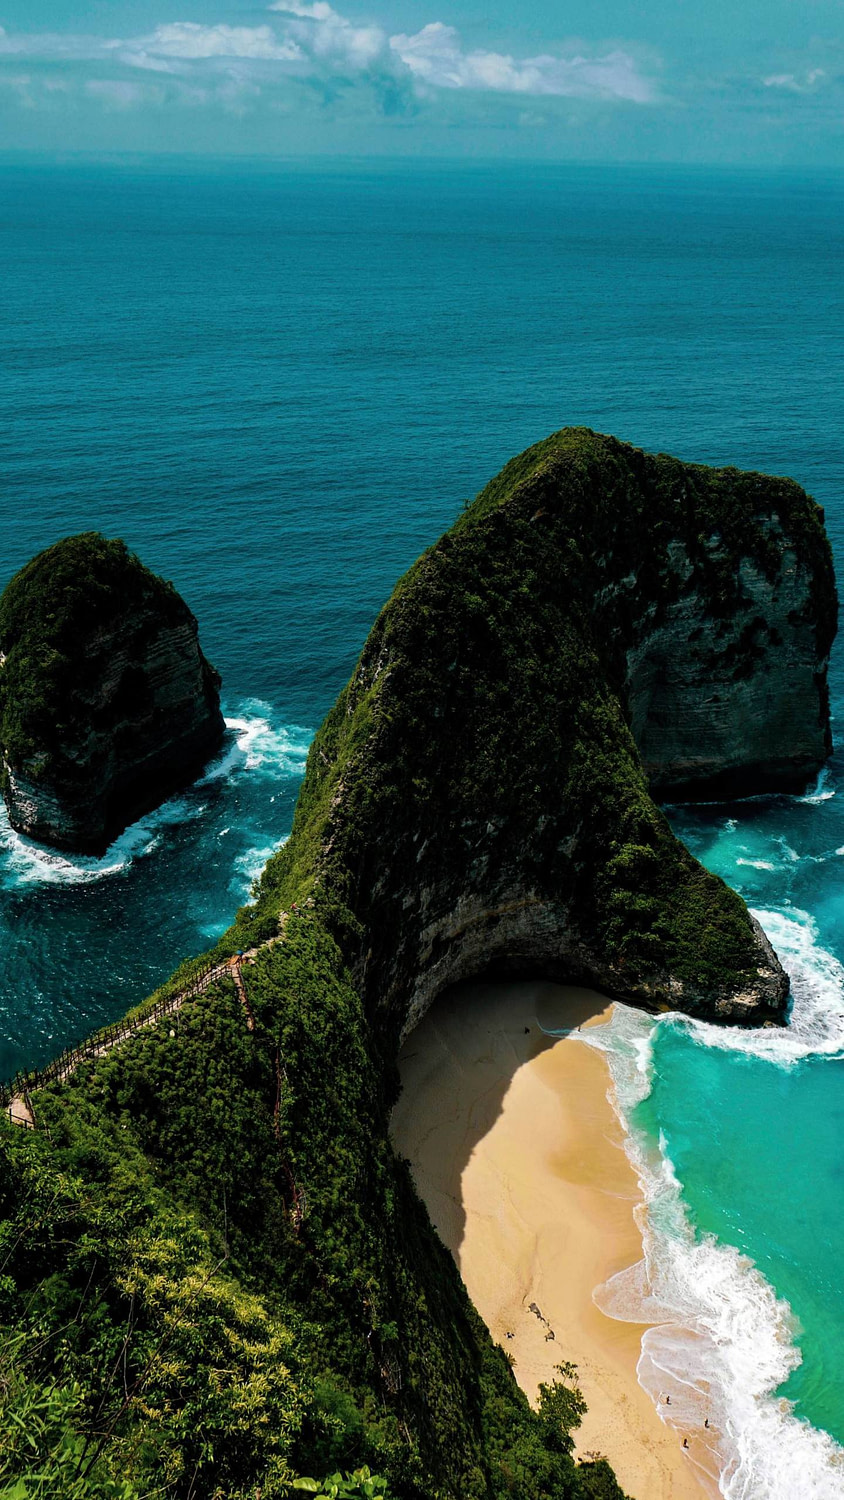 A stunning shot of a cliff and beach in Bali!